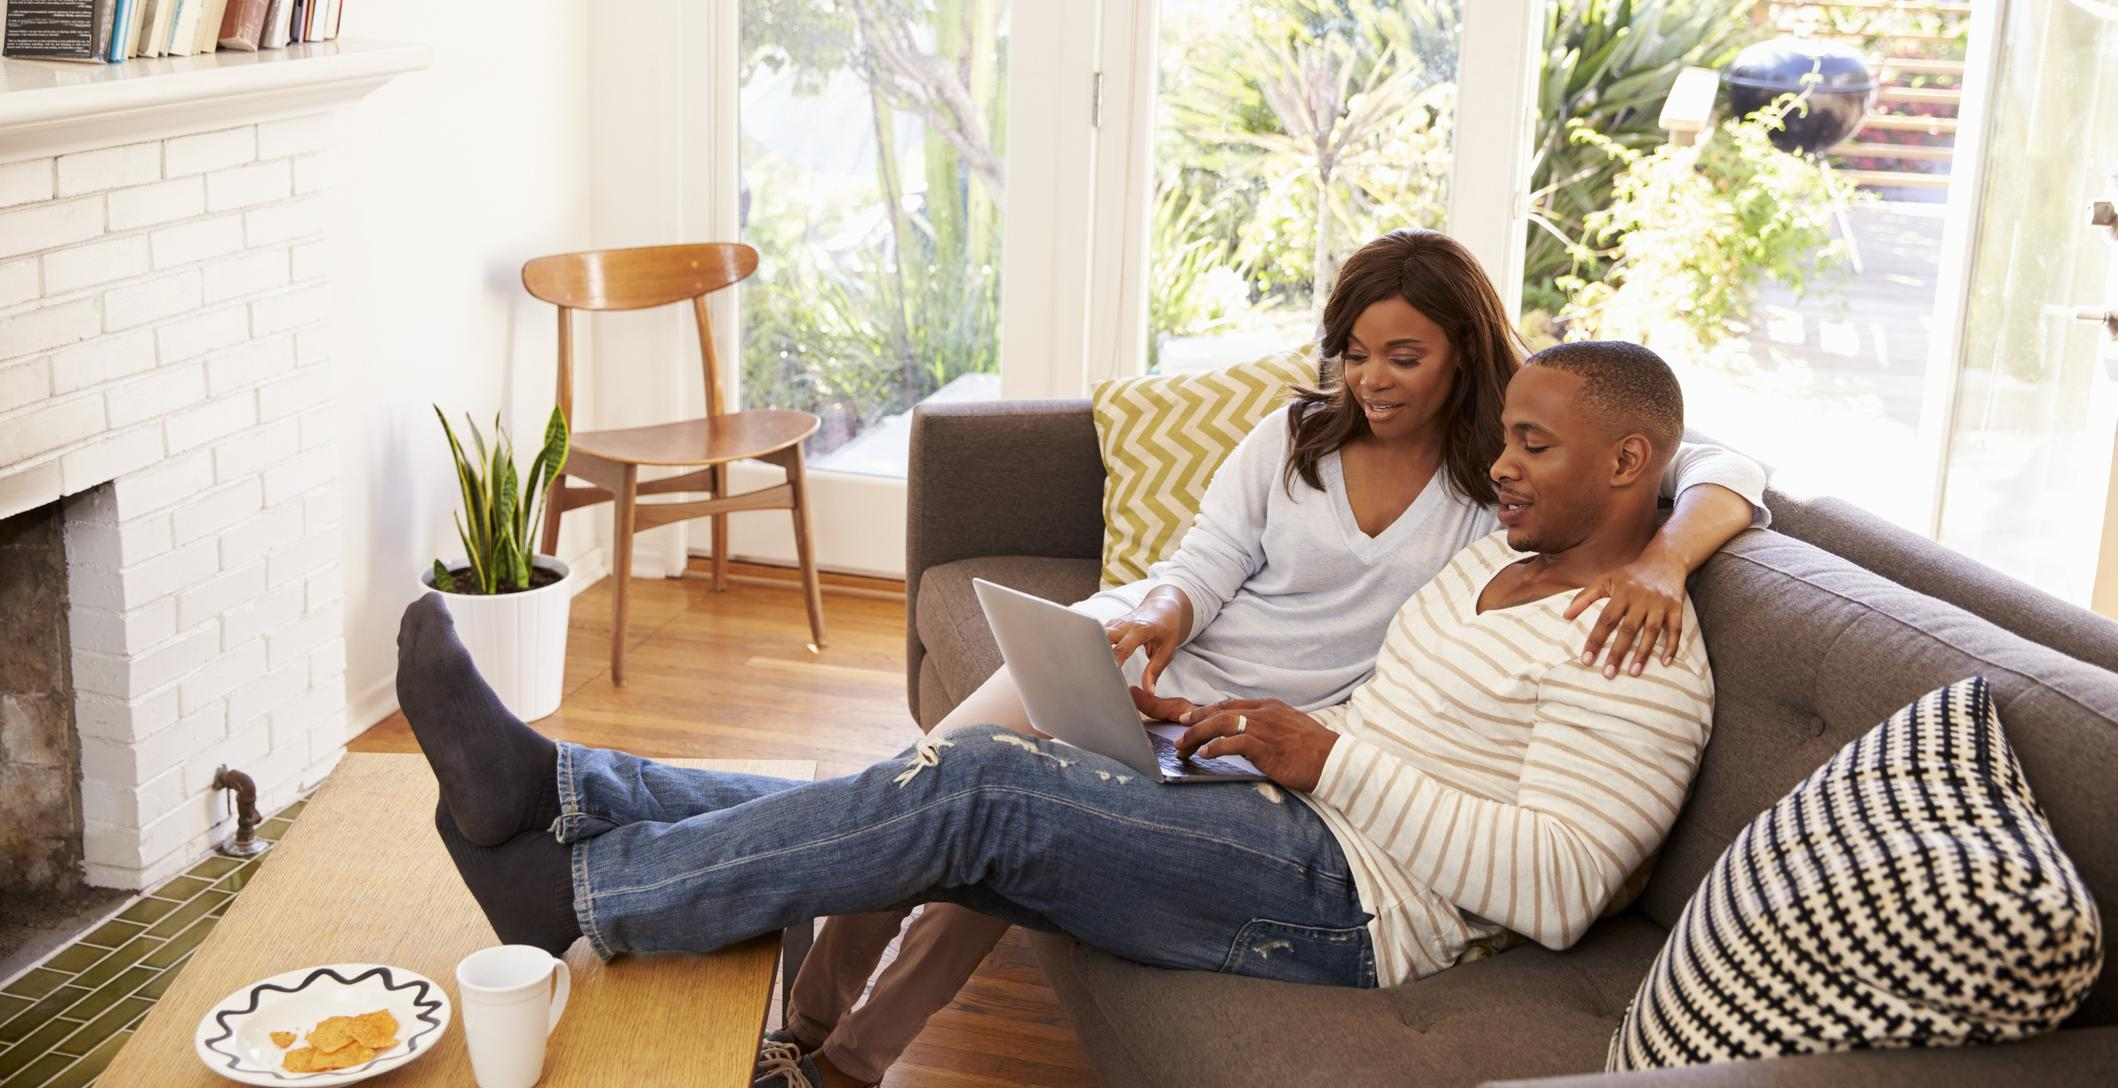 Couple sitting in living room looking at laptop.